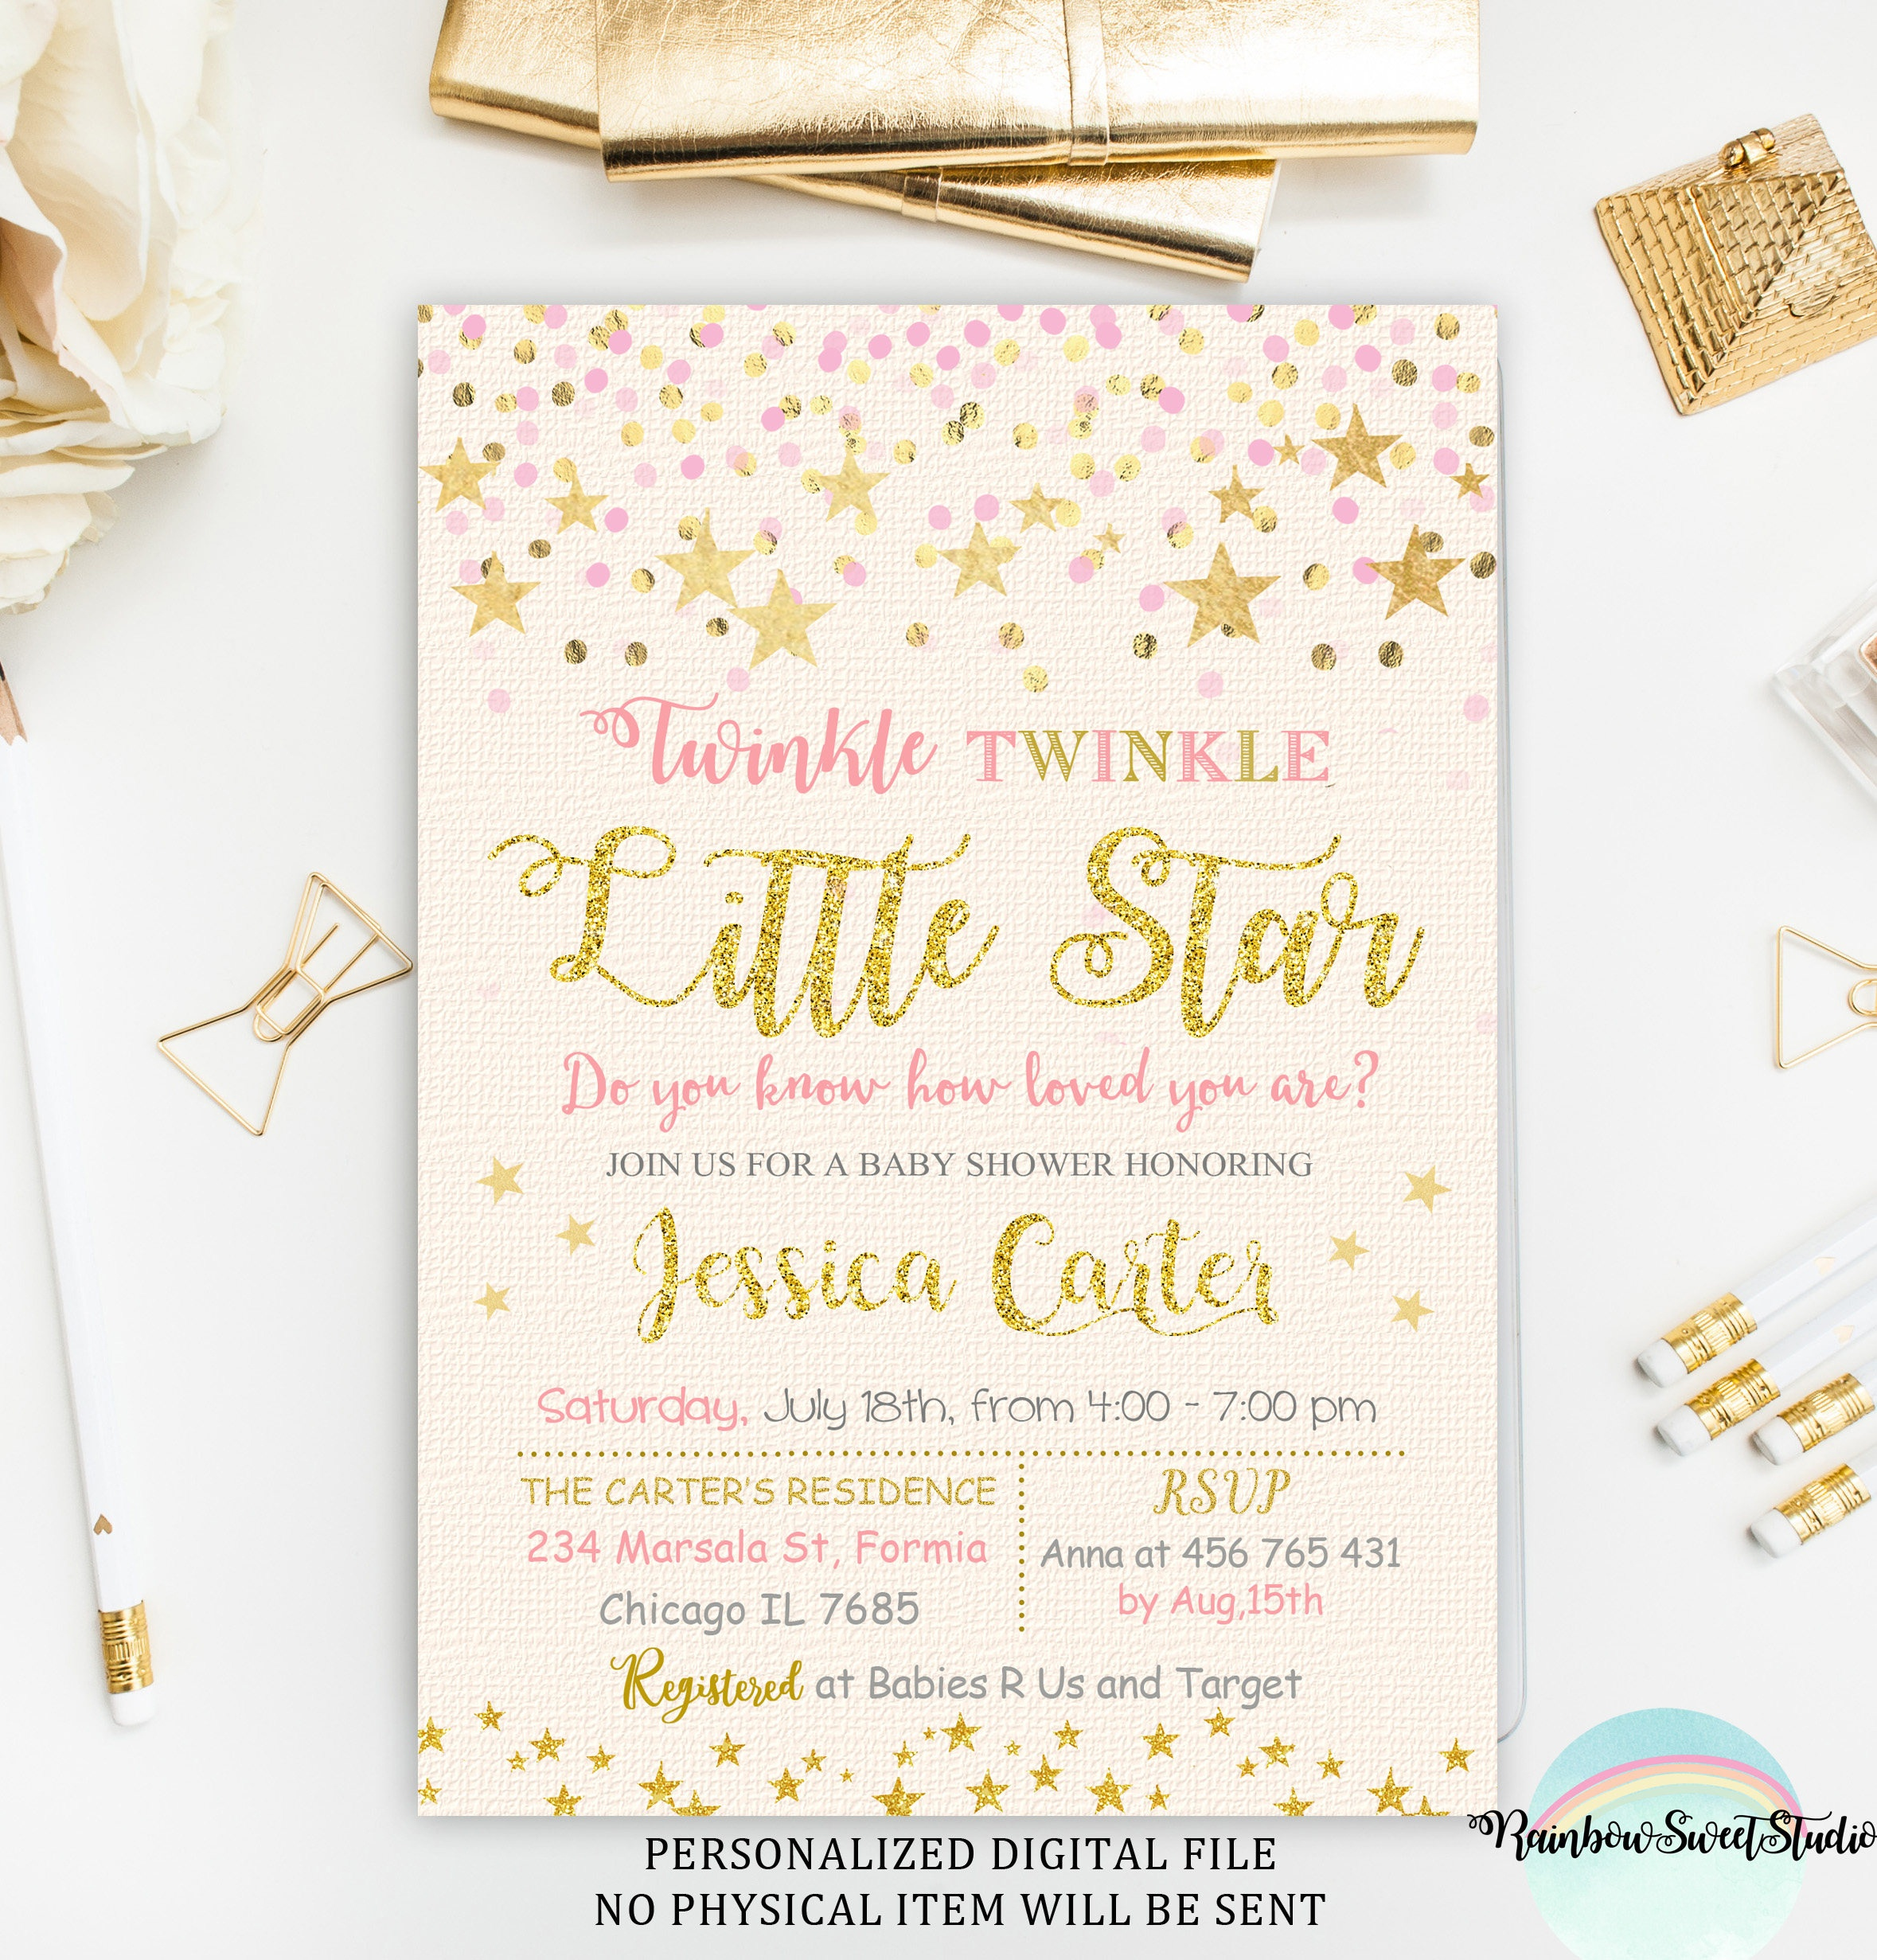 Twinkle Twinkle Little Star Baby Shower Invitation Pink And | Etsy - Free Printable Twinkle Twinkle Little Star Baby Shower Invitations